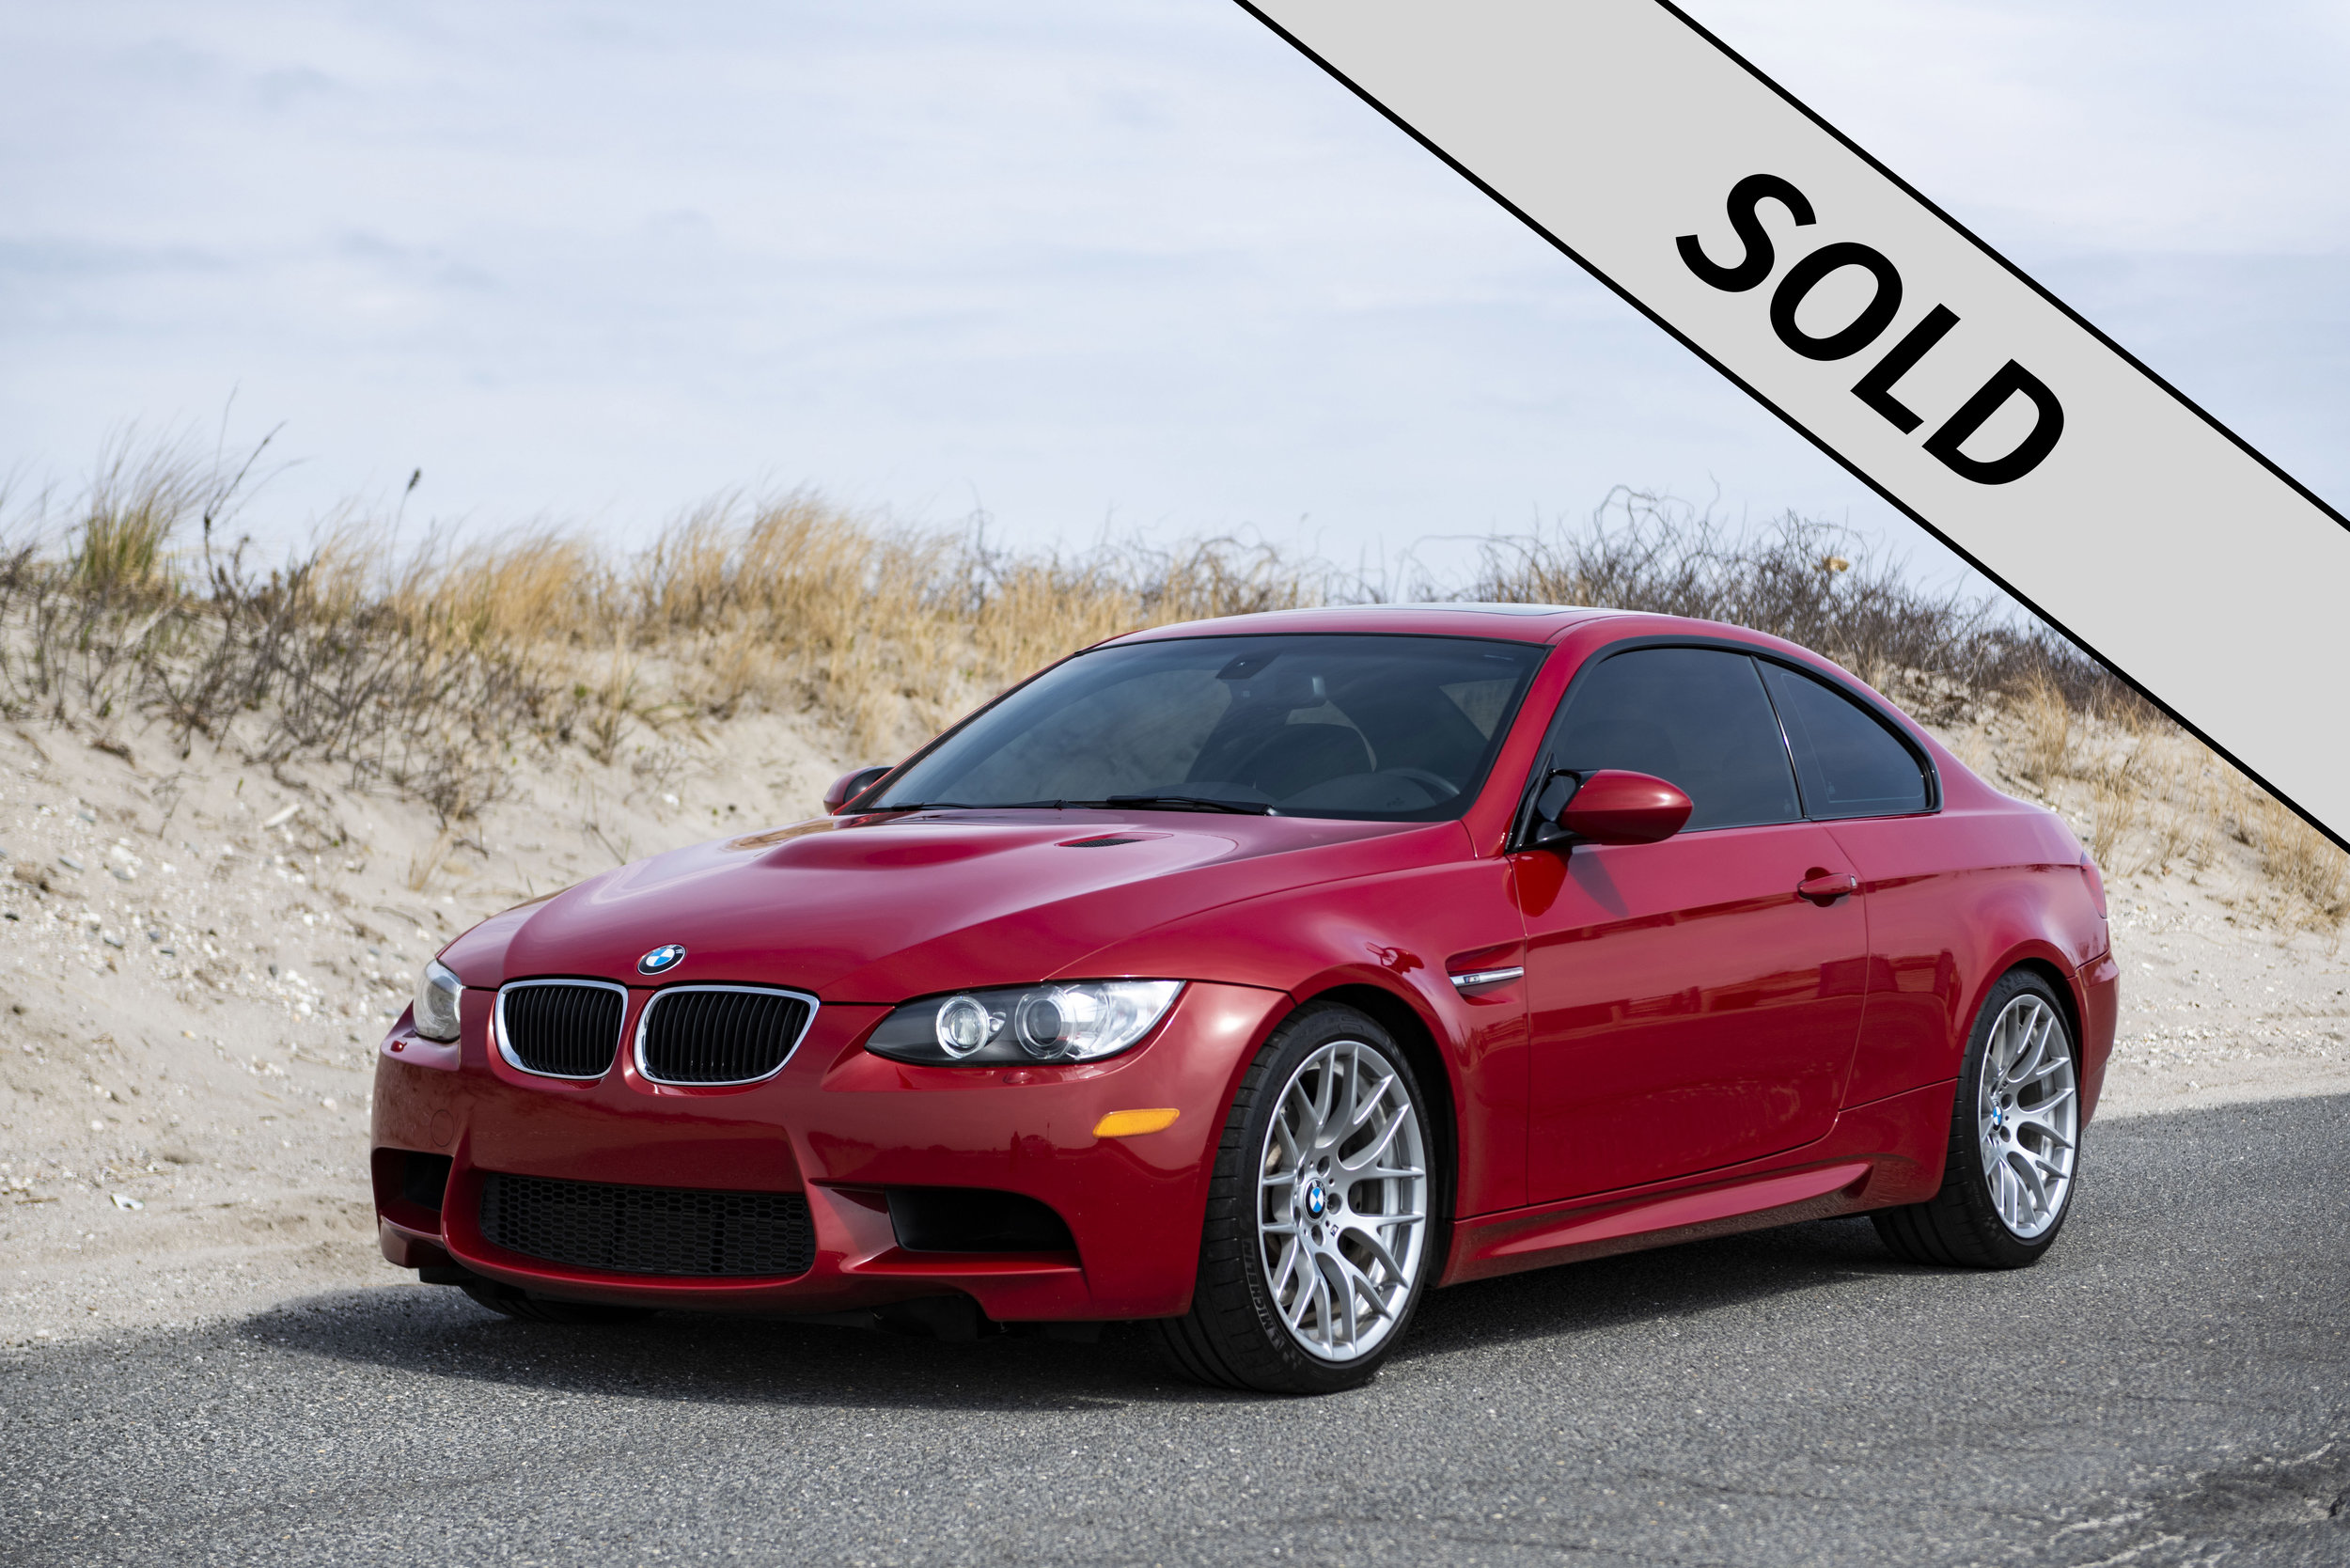 2011 BMW M3 Competition SOLD.jpg